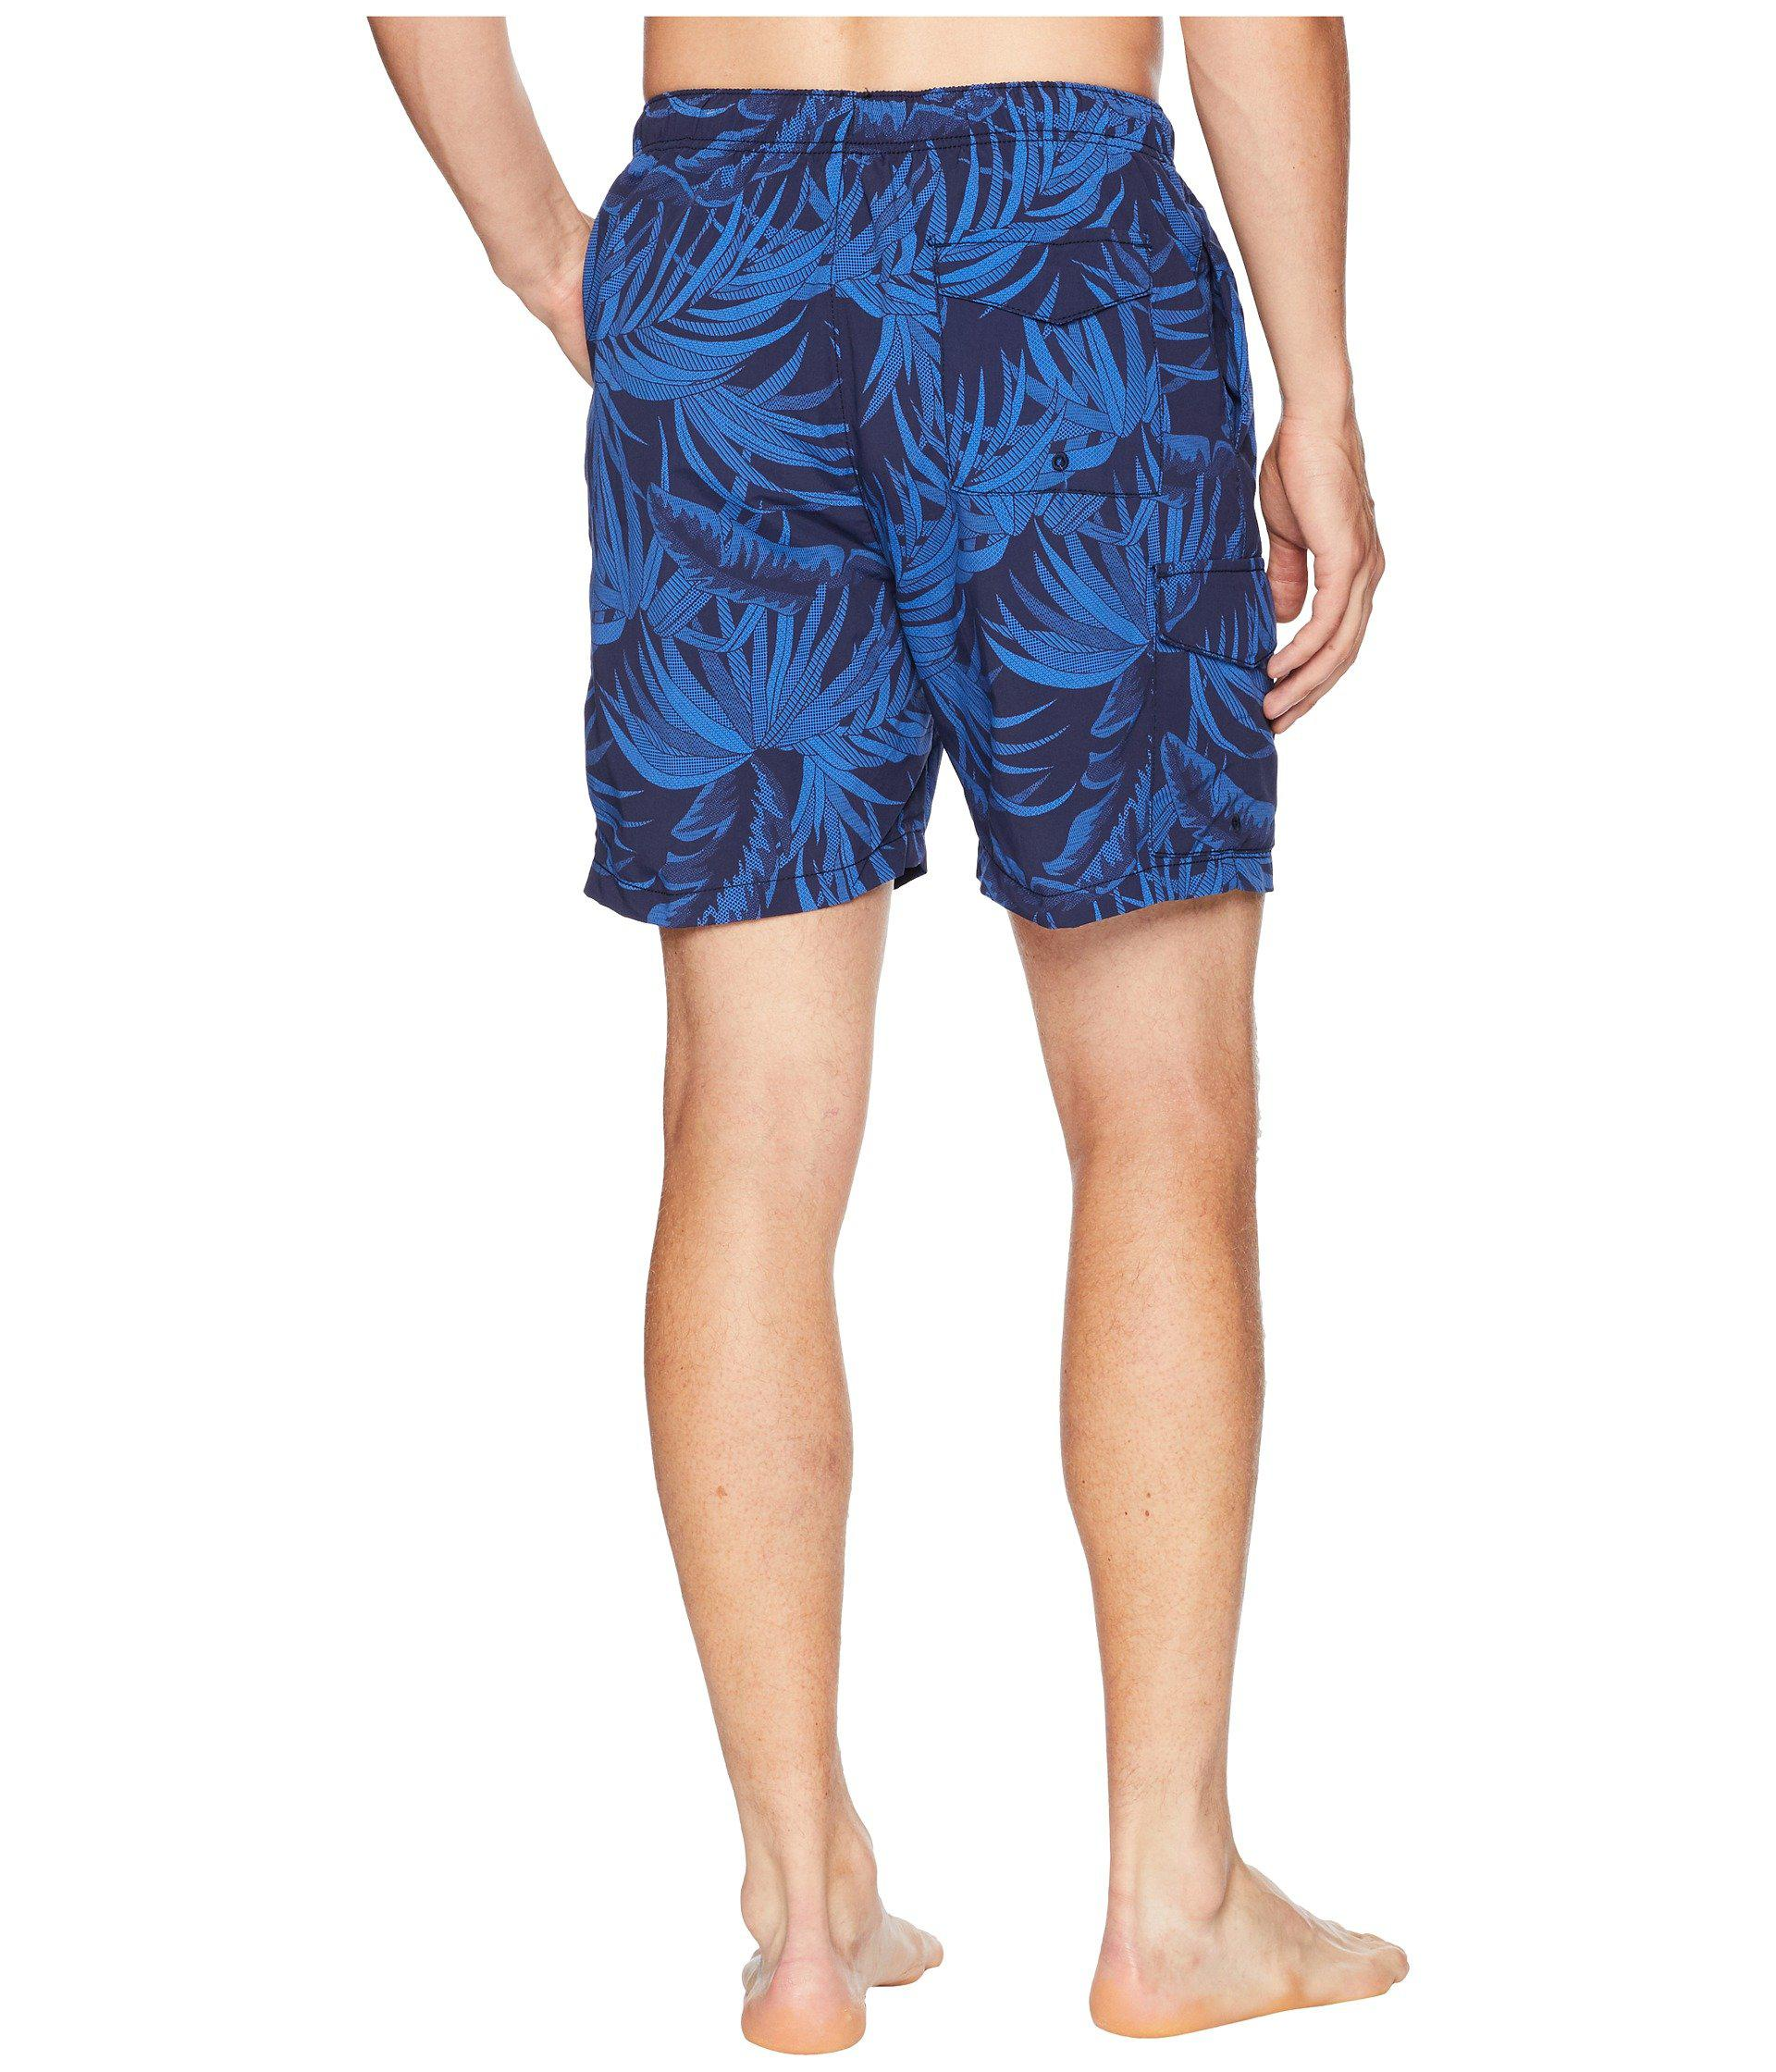 0f310efb81 Lyst - Tommy Bahama Naples Midnight Flora Swim Trunk (ocean Deep ...